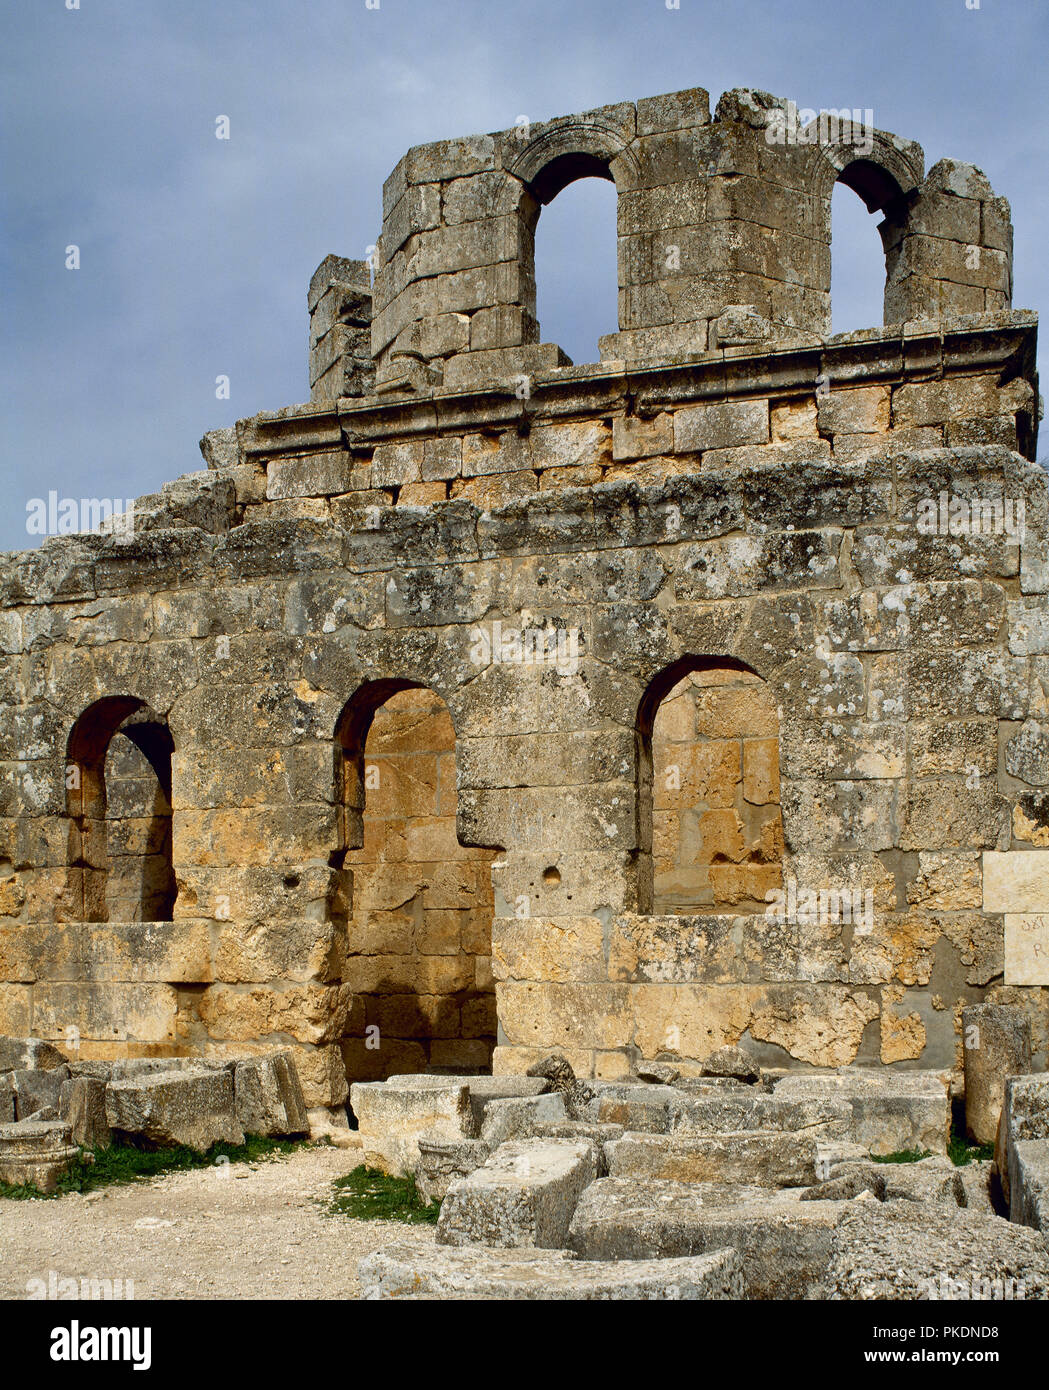 Church of Saint Simeon Stylites. It was built on the site of the pillar of St. Simeon Stylites. Byzantine style. The baptistry. Mount Simeon. Aleppo. Syria. Historical photography (before the Syrian Civil War). - Stock Image